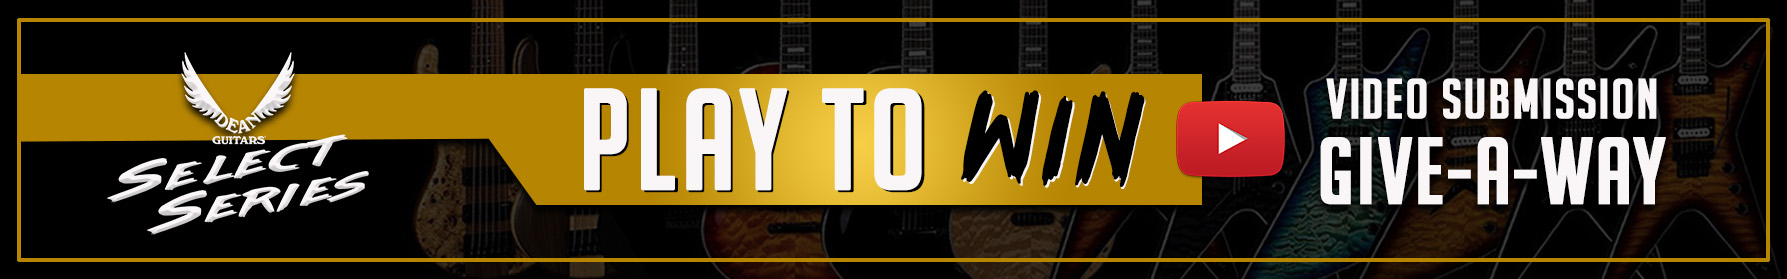 Guitar Players Unite and Play to Win!